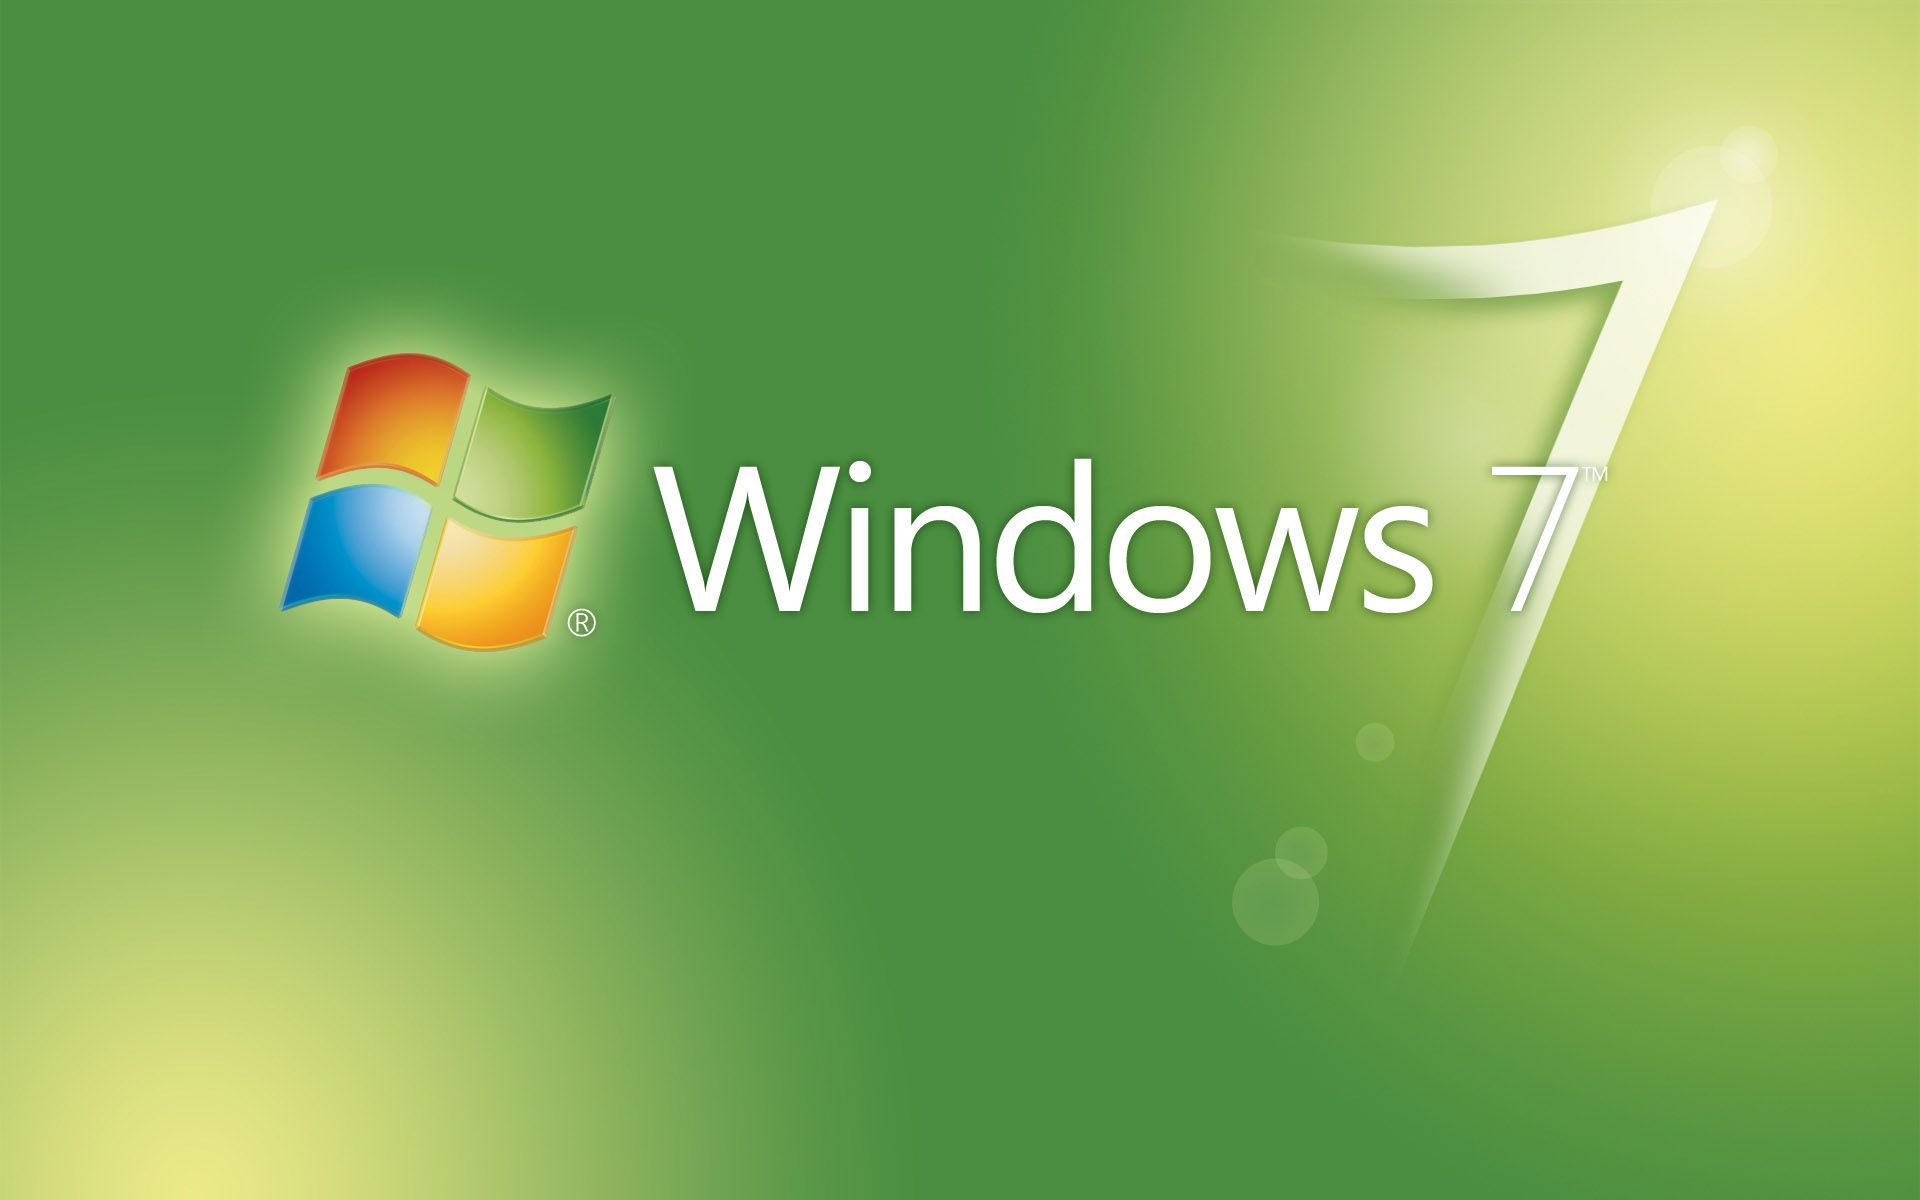 Askpcexperts Provides All Computer Installation Services For All Computers In Very Affordable Prices Desktop Wallpapers Backgrounds Windows Green Wallpaper